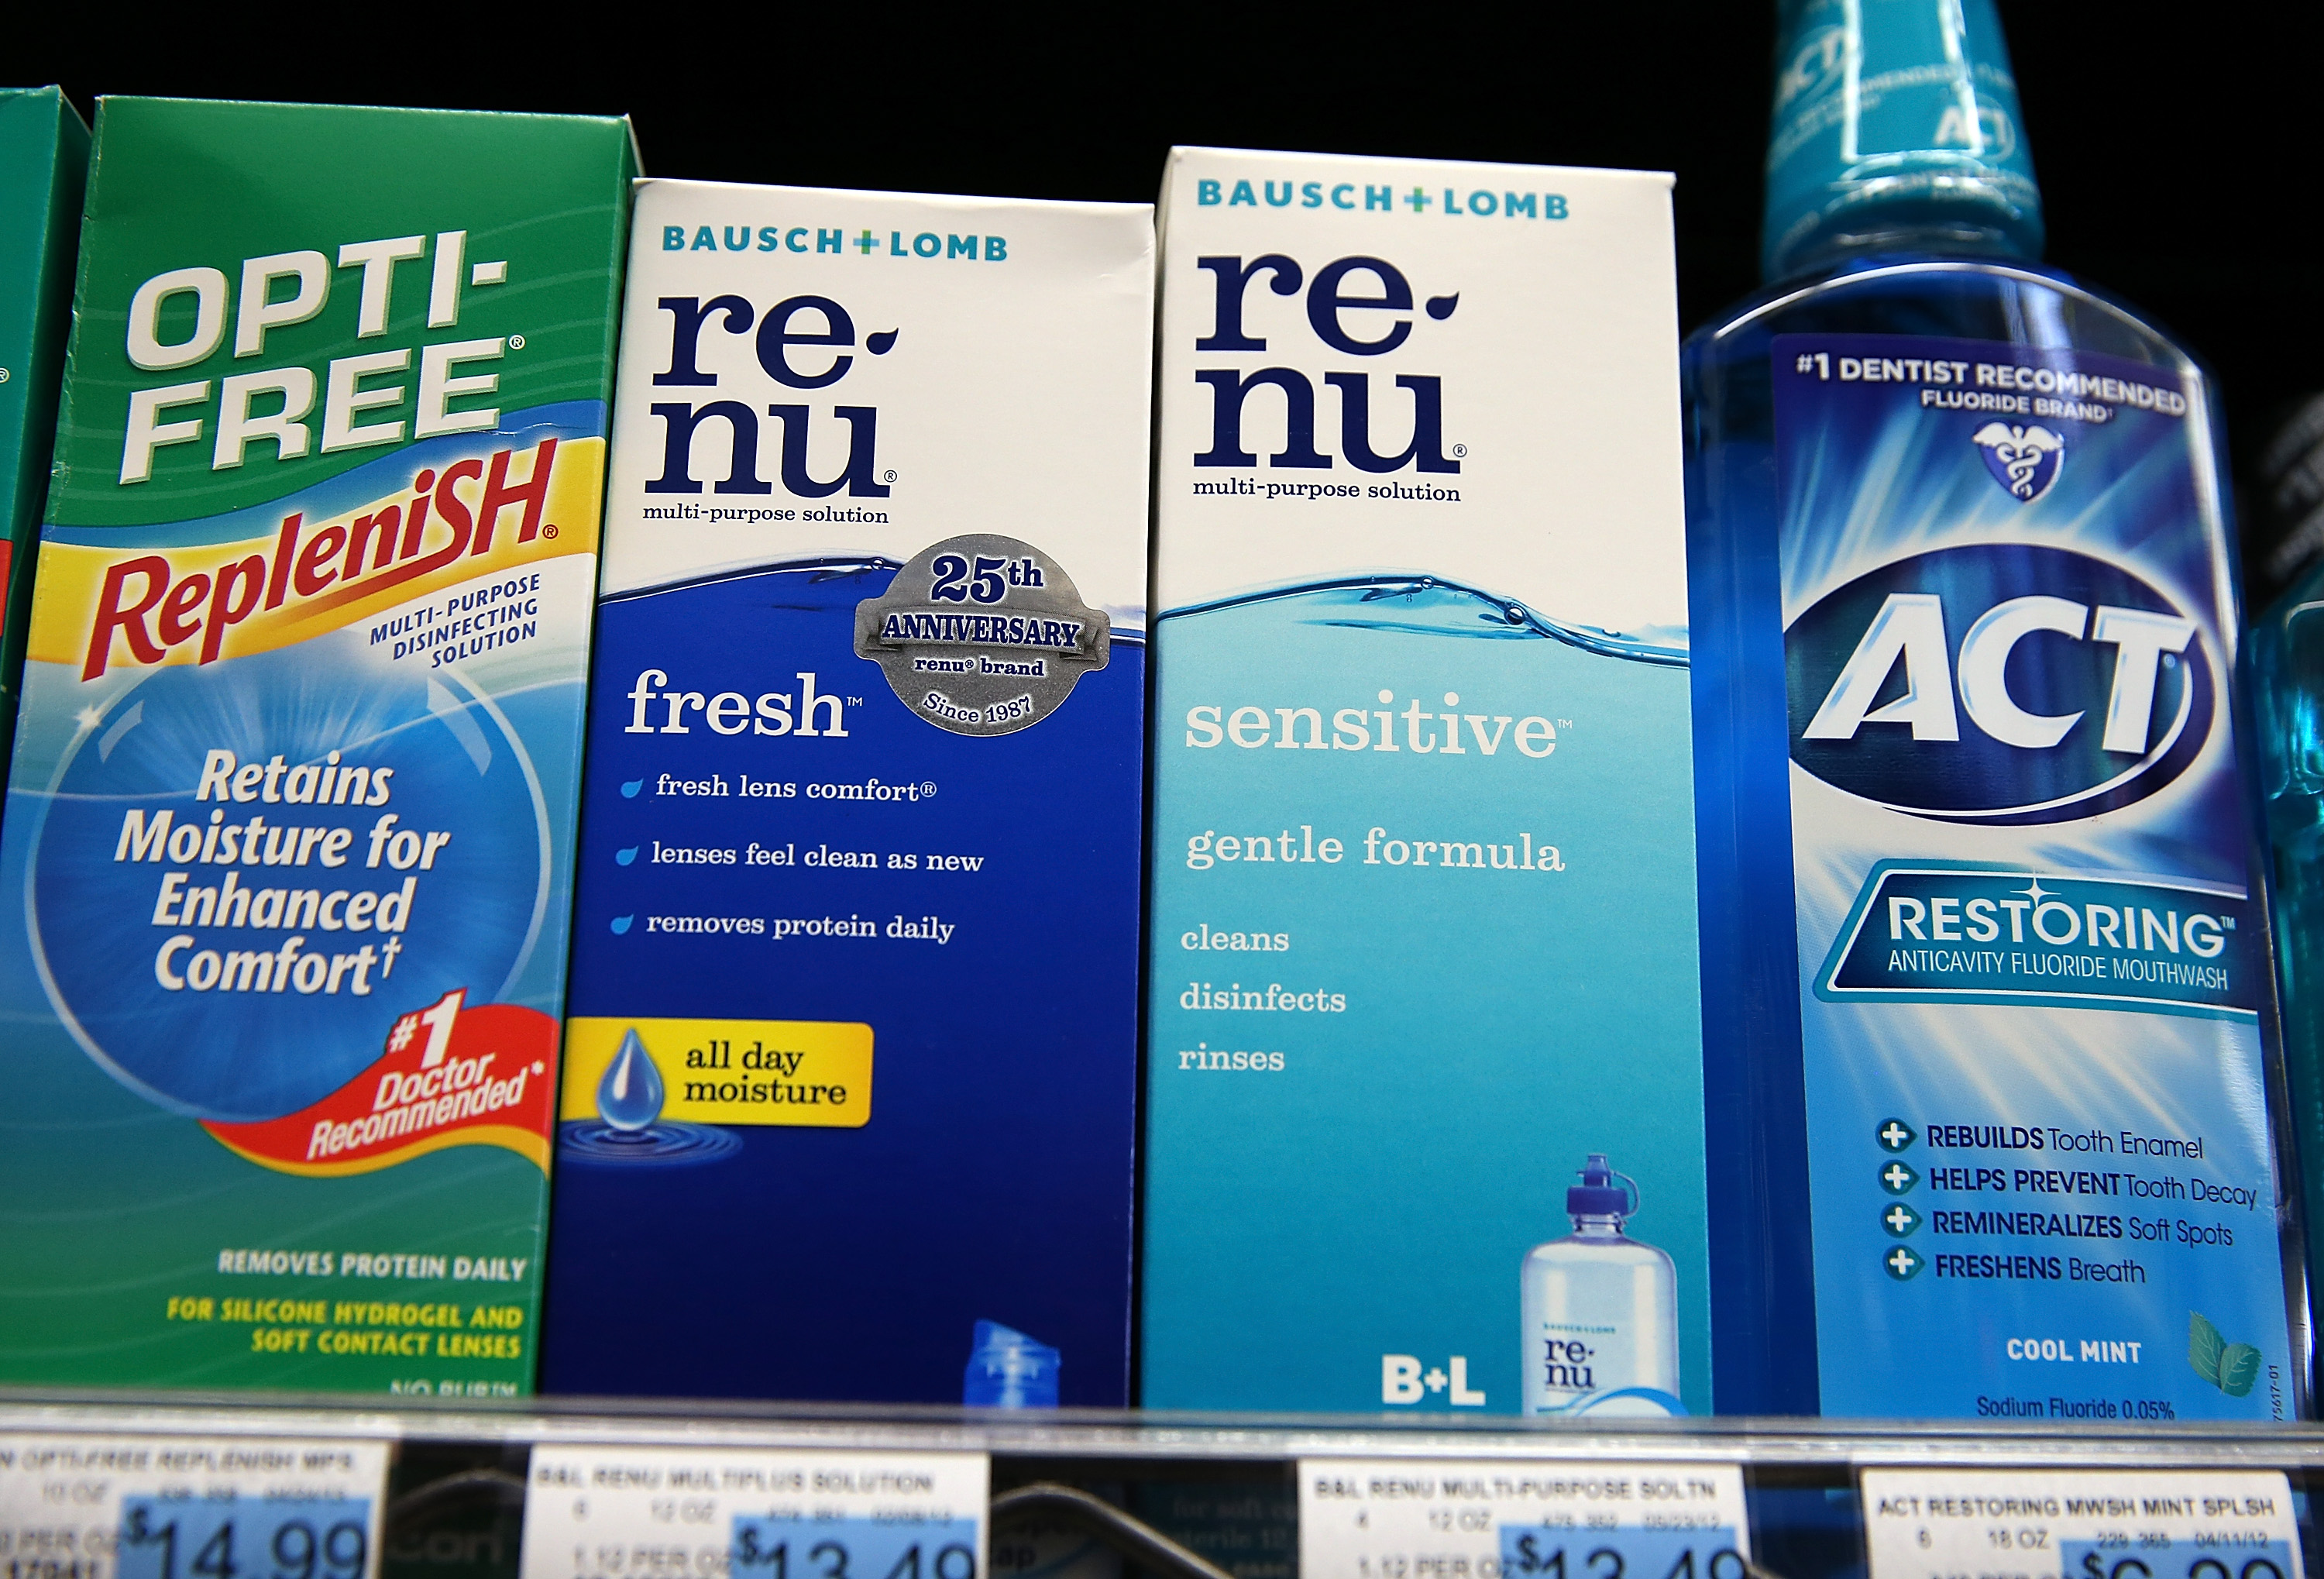 Valeant To Buy Bausch & Lomb For $8.7 Billion